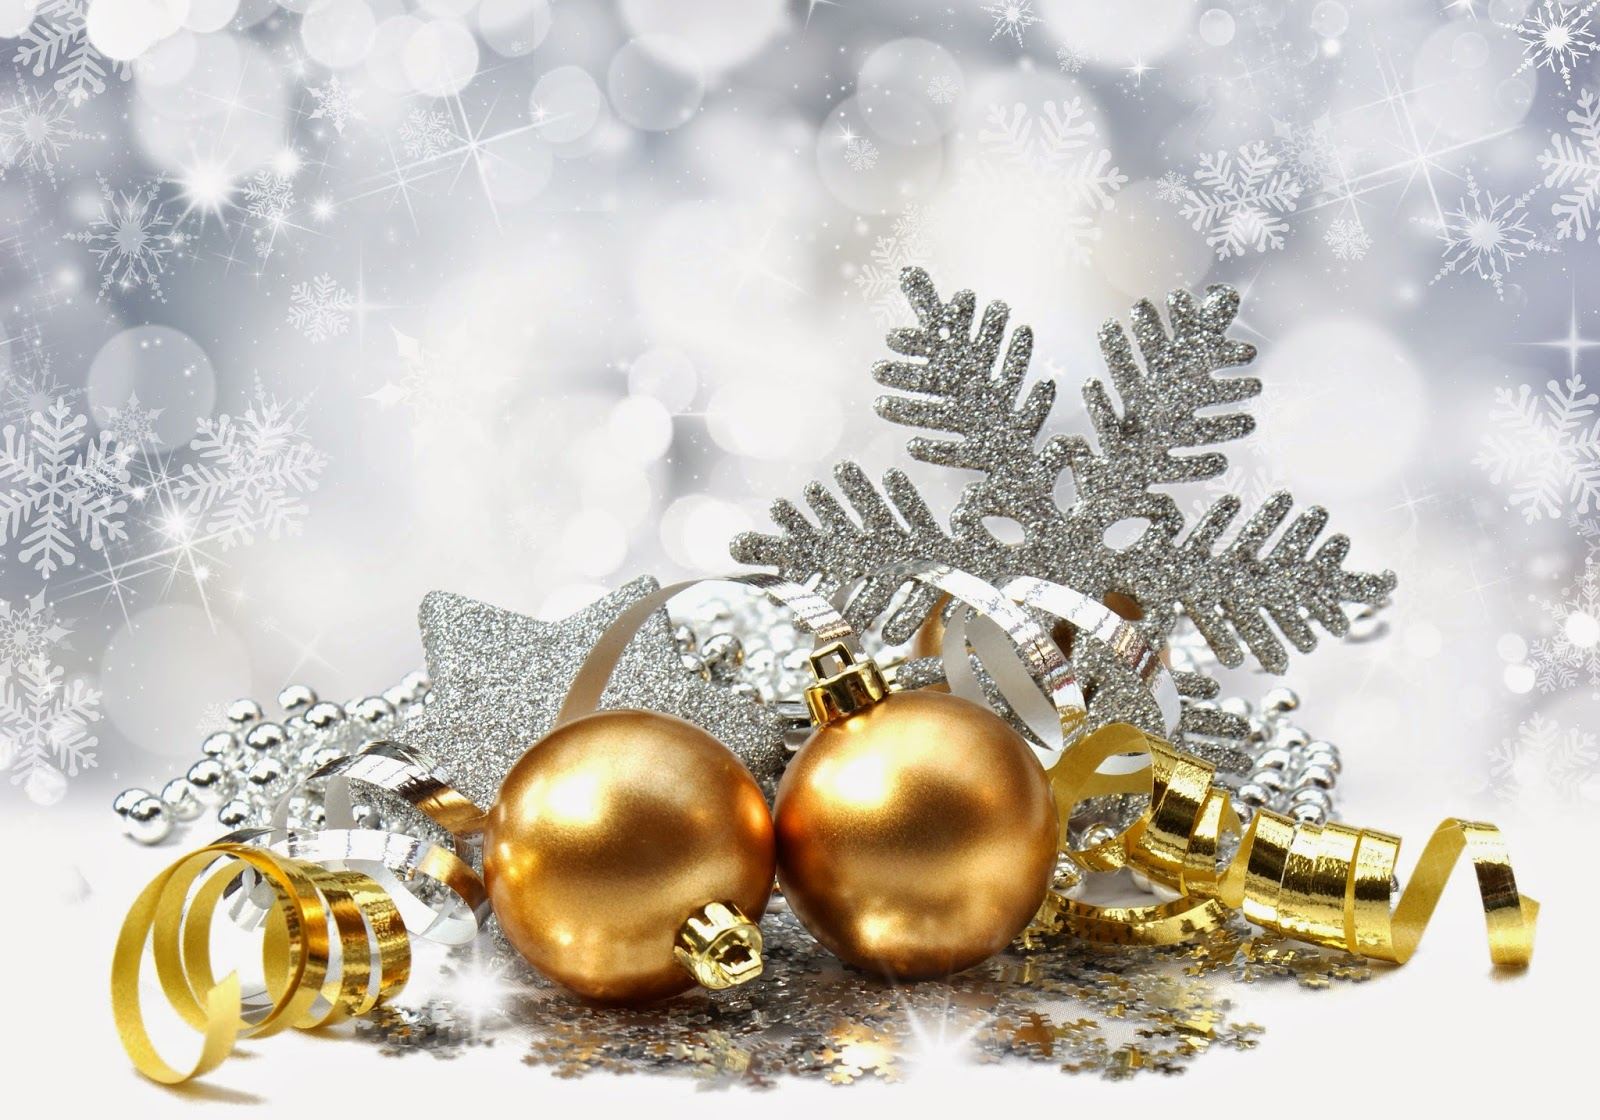 Golden-Christmas-balls-with-silver-snow-flakes-background-wallpaper-HD-image.jpg